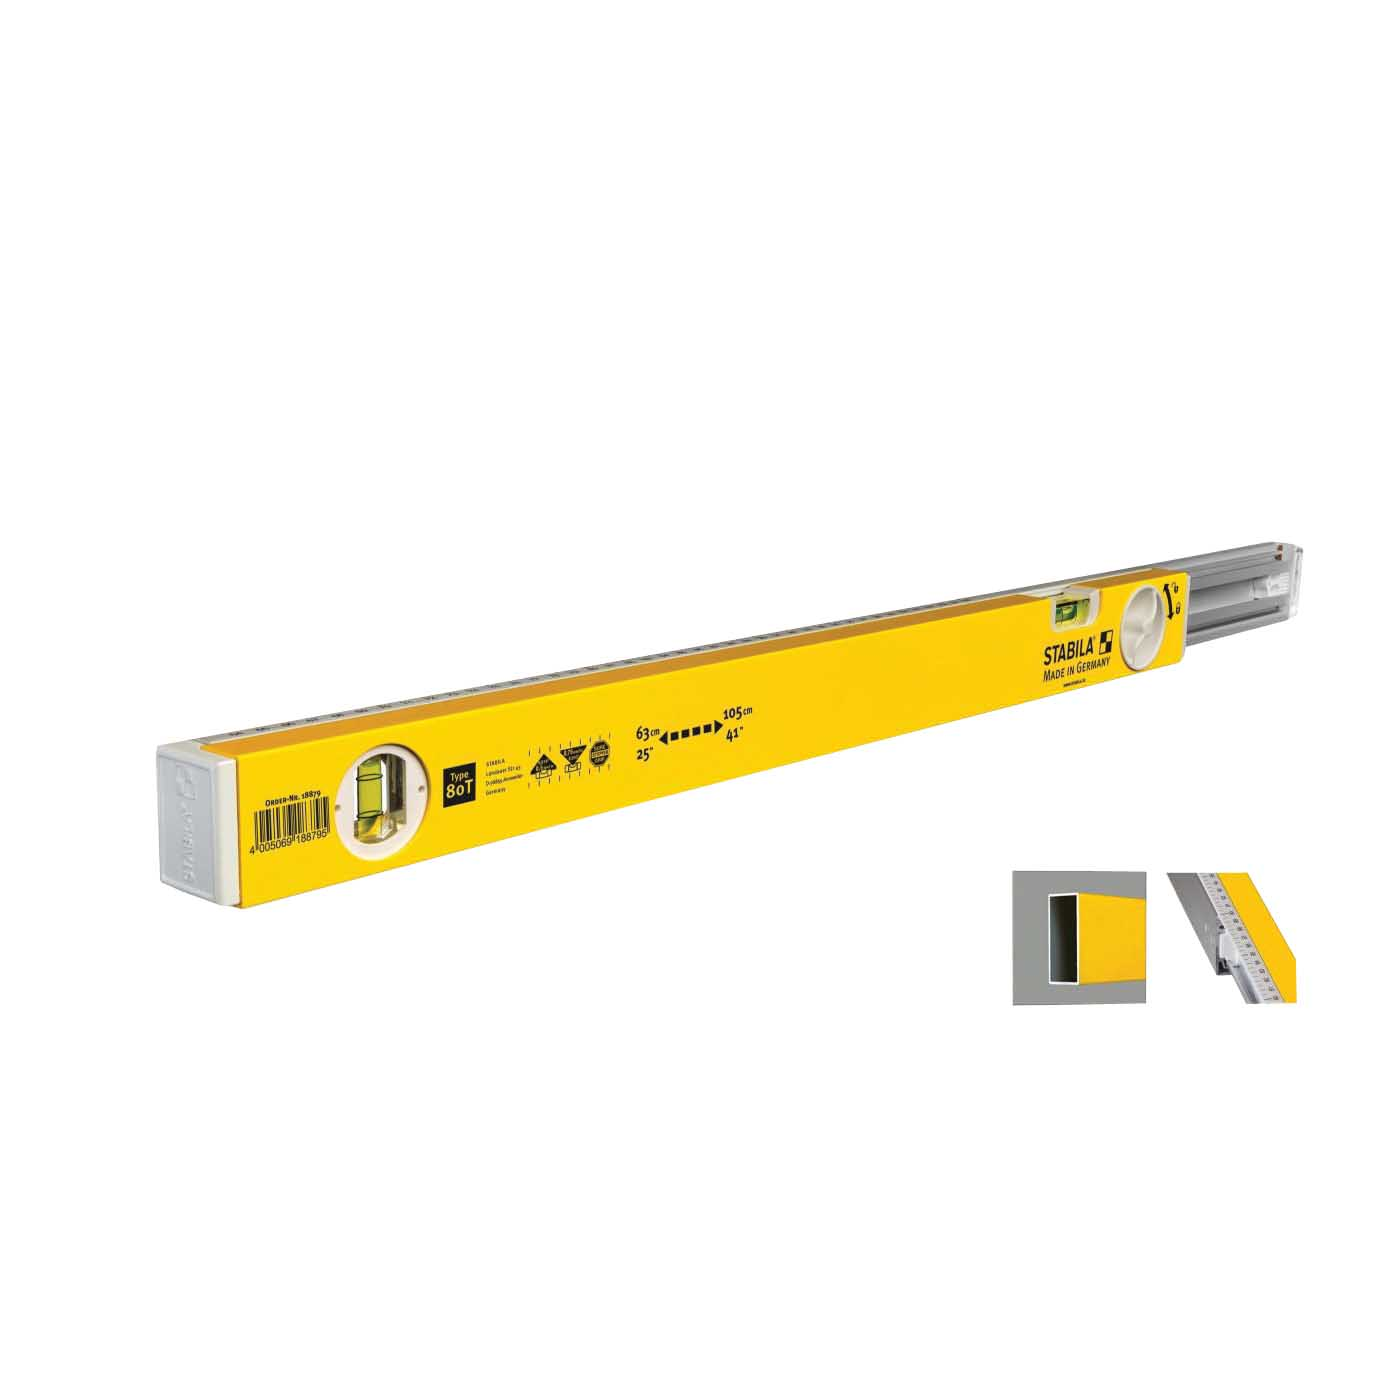 Picture of Stabila 29441 Extendable Level, 25 in L, 2 -Vial, Aluminum, Yellow/White